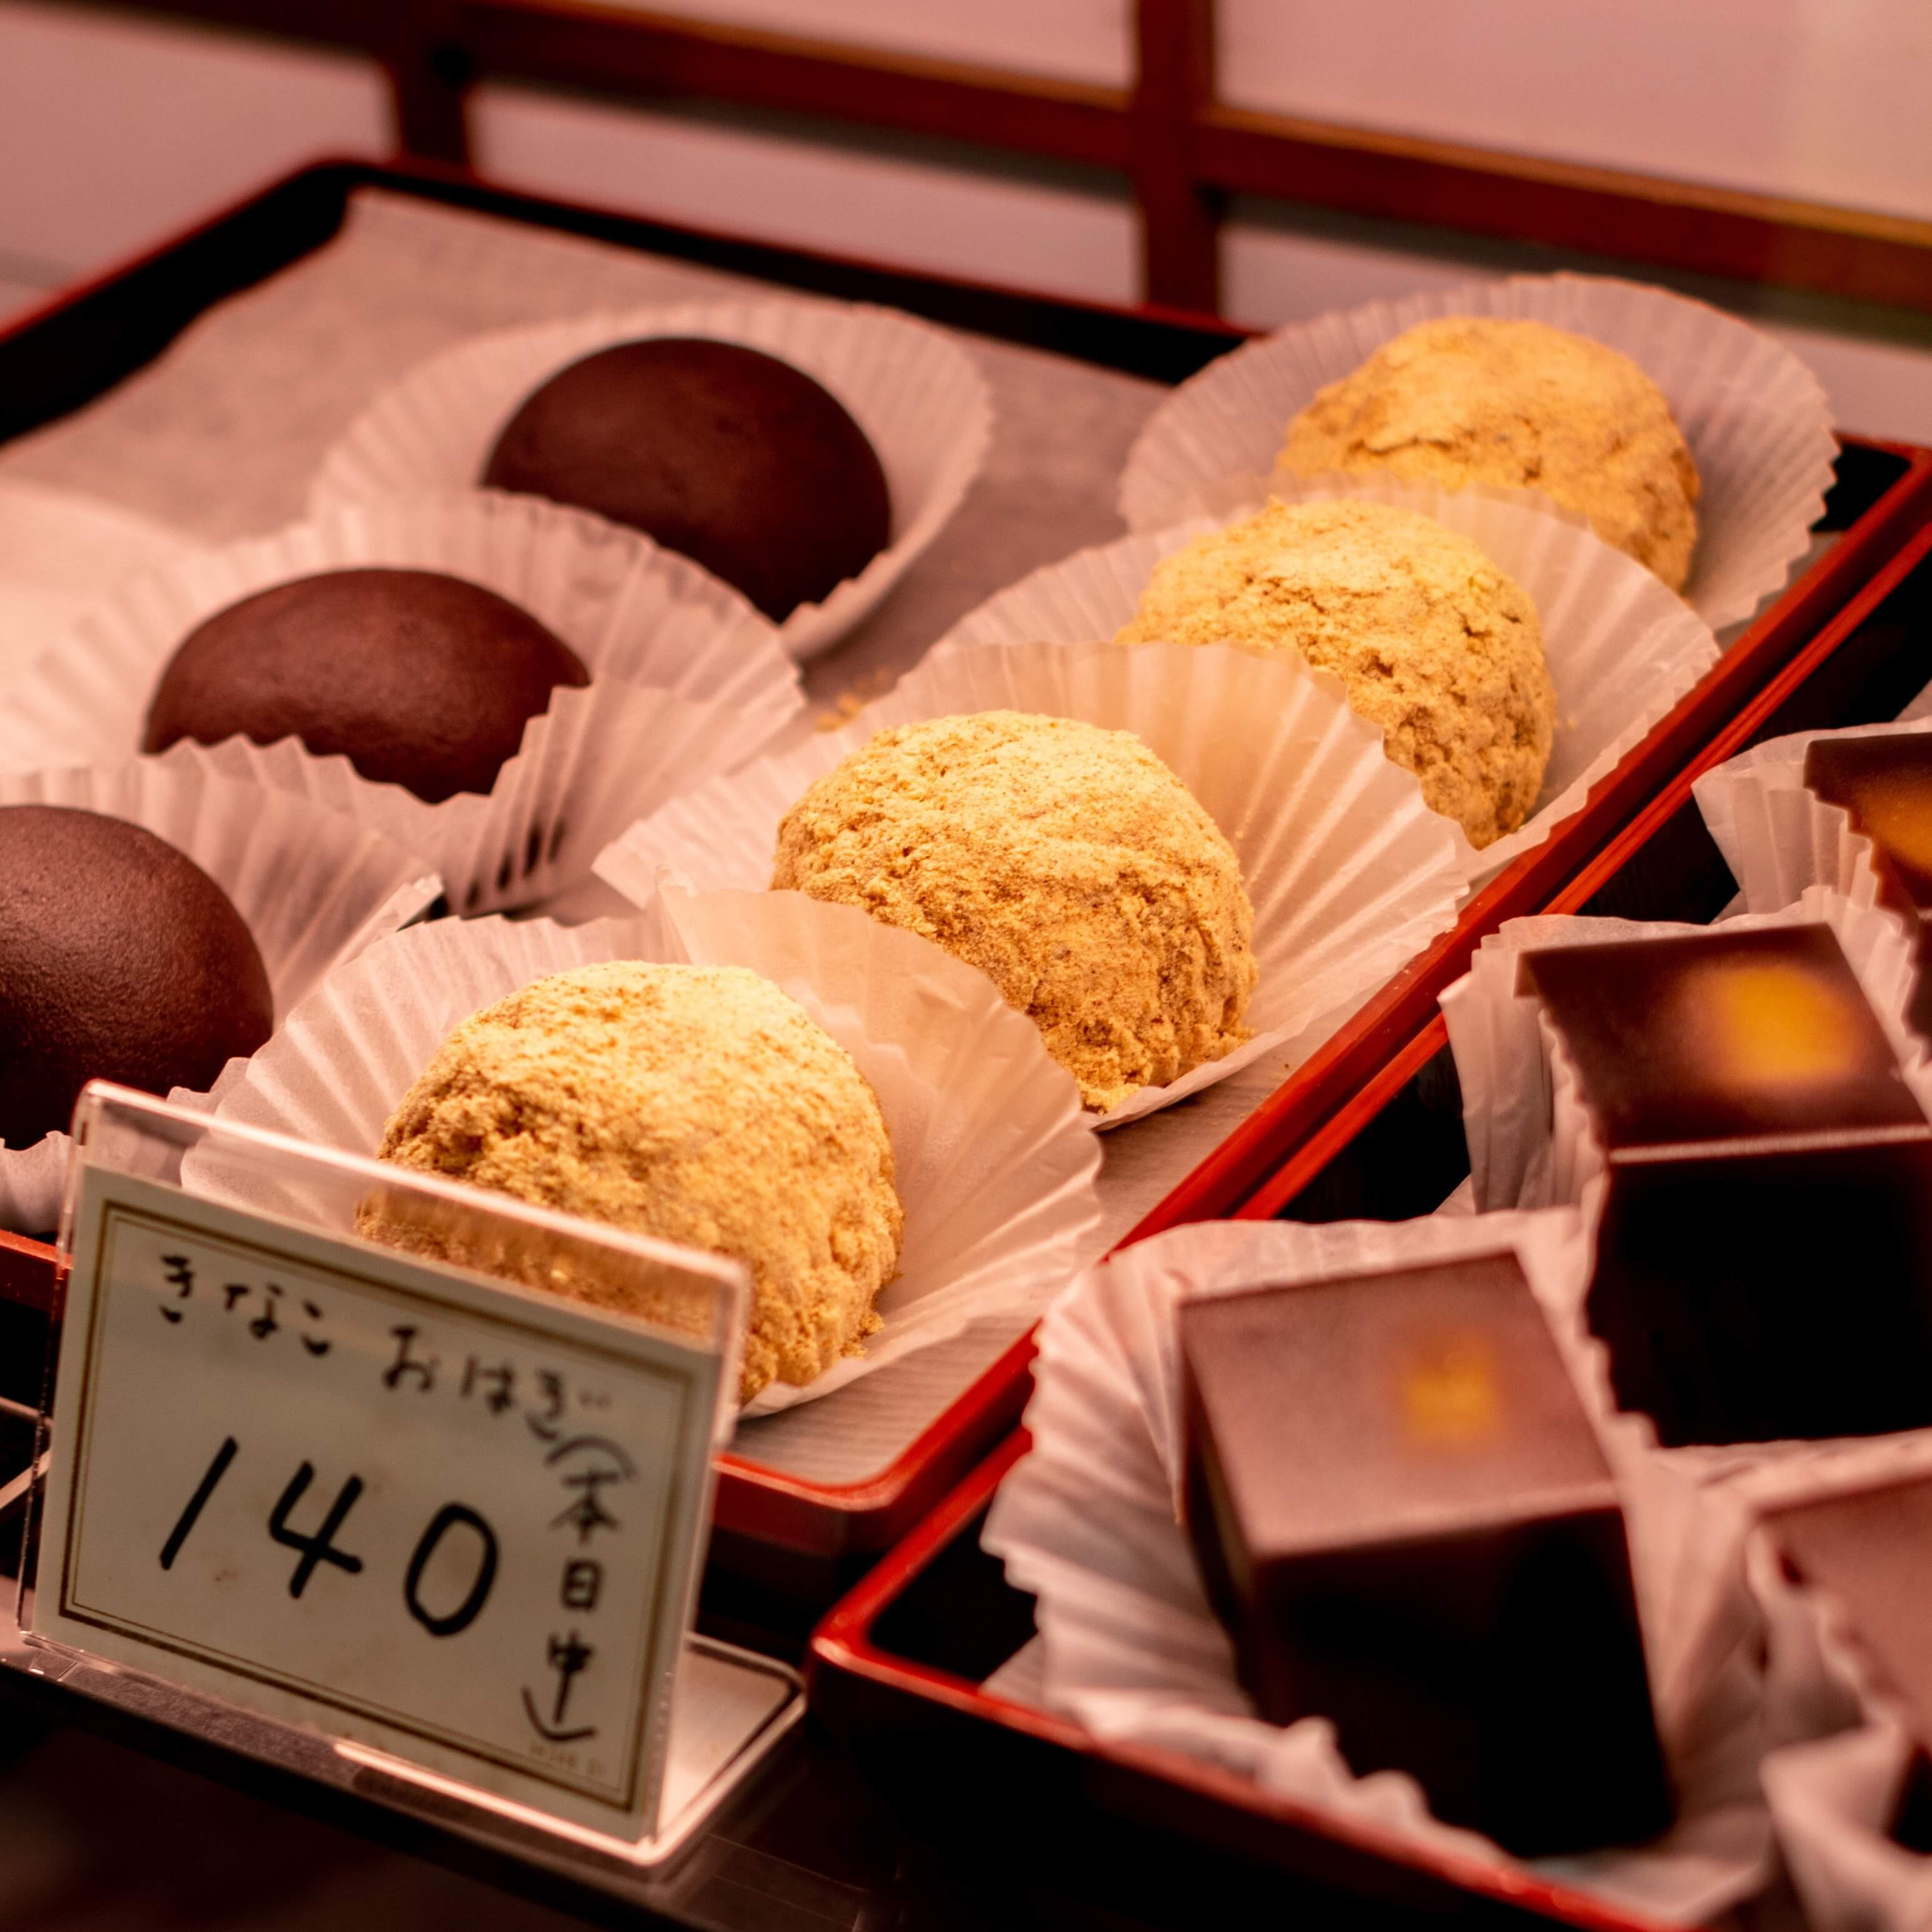 Wagashi or Traditional Japanese Sweets